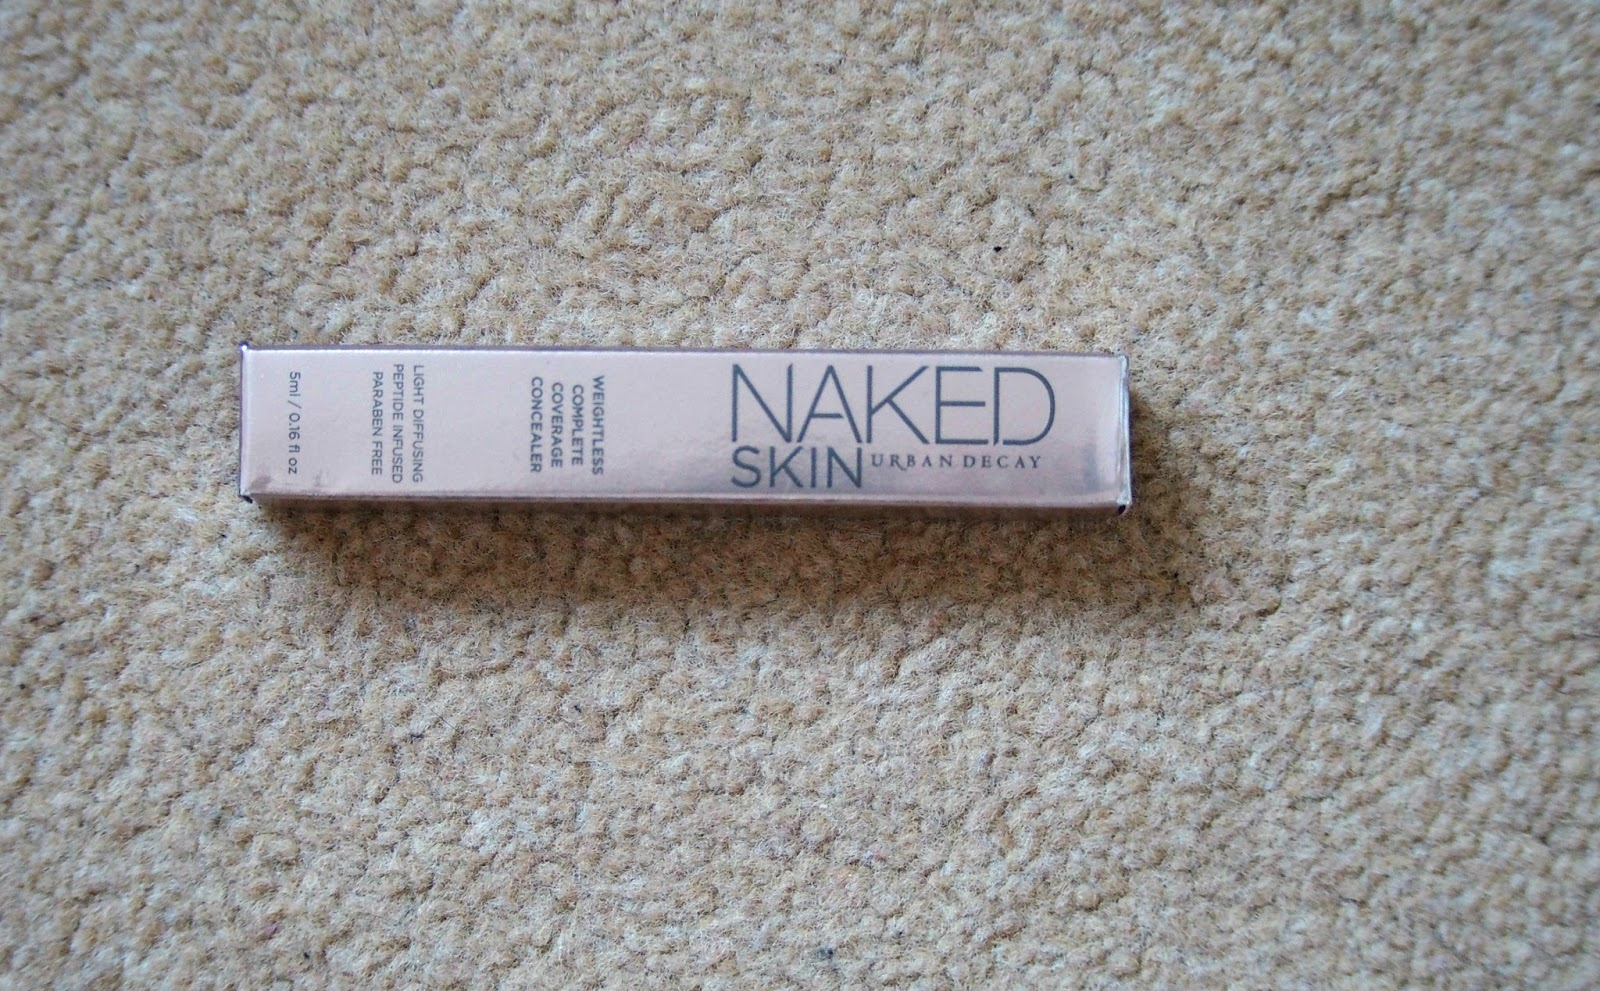 Package of concealer